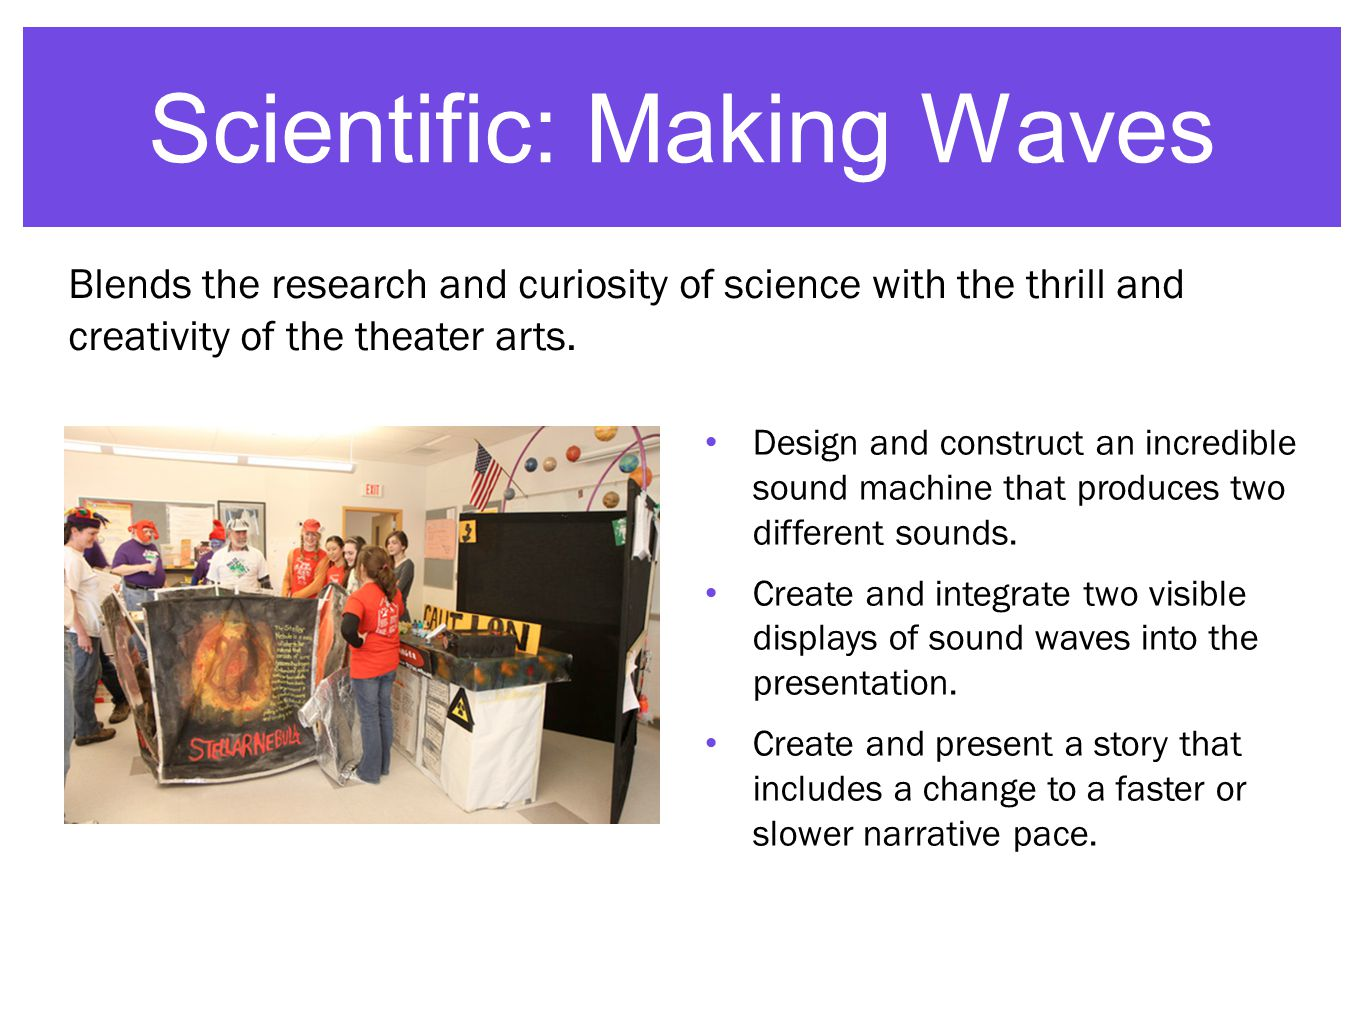 Scientific: Making Waves Design and construct an incredible sound machine that produces two different sounds.